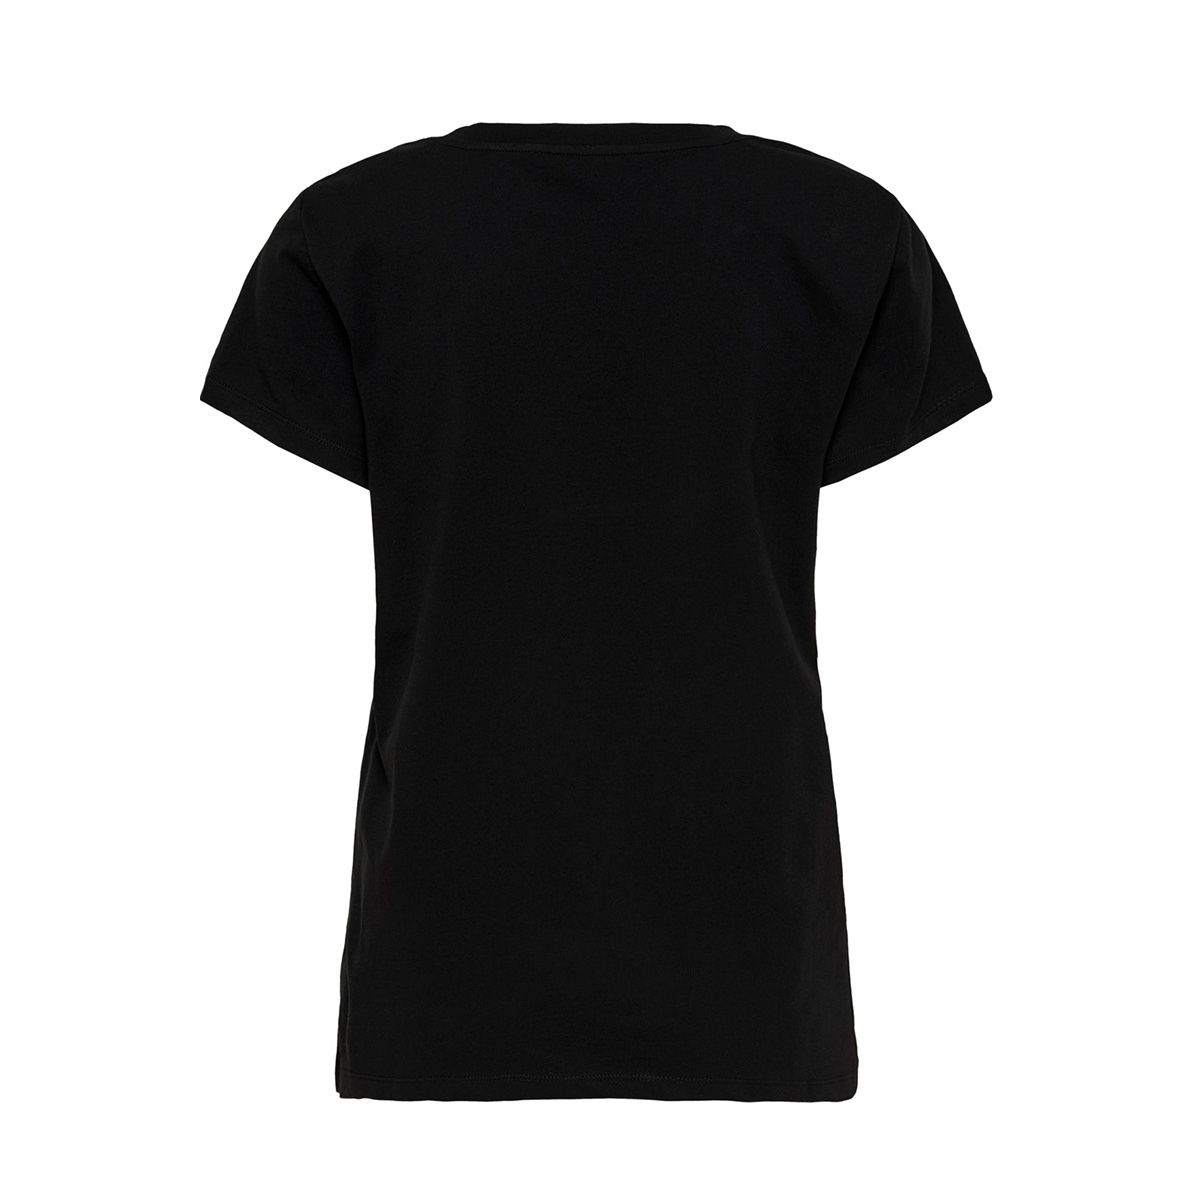 onlmarlyn s/s t-shirt jrs 15204633 only t-shirt black/awesome